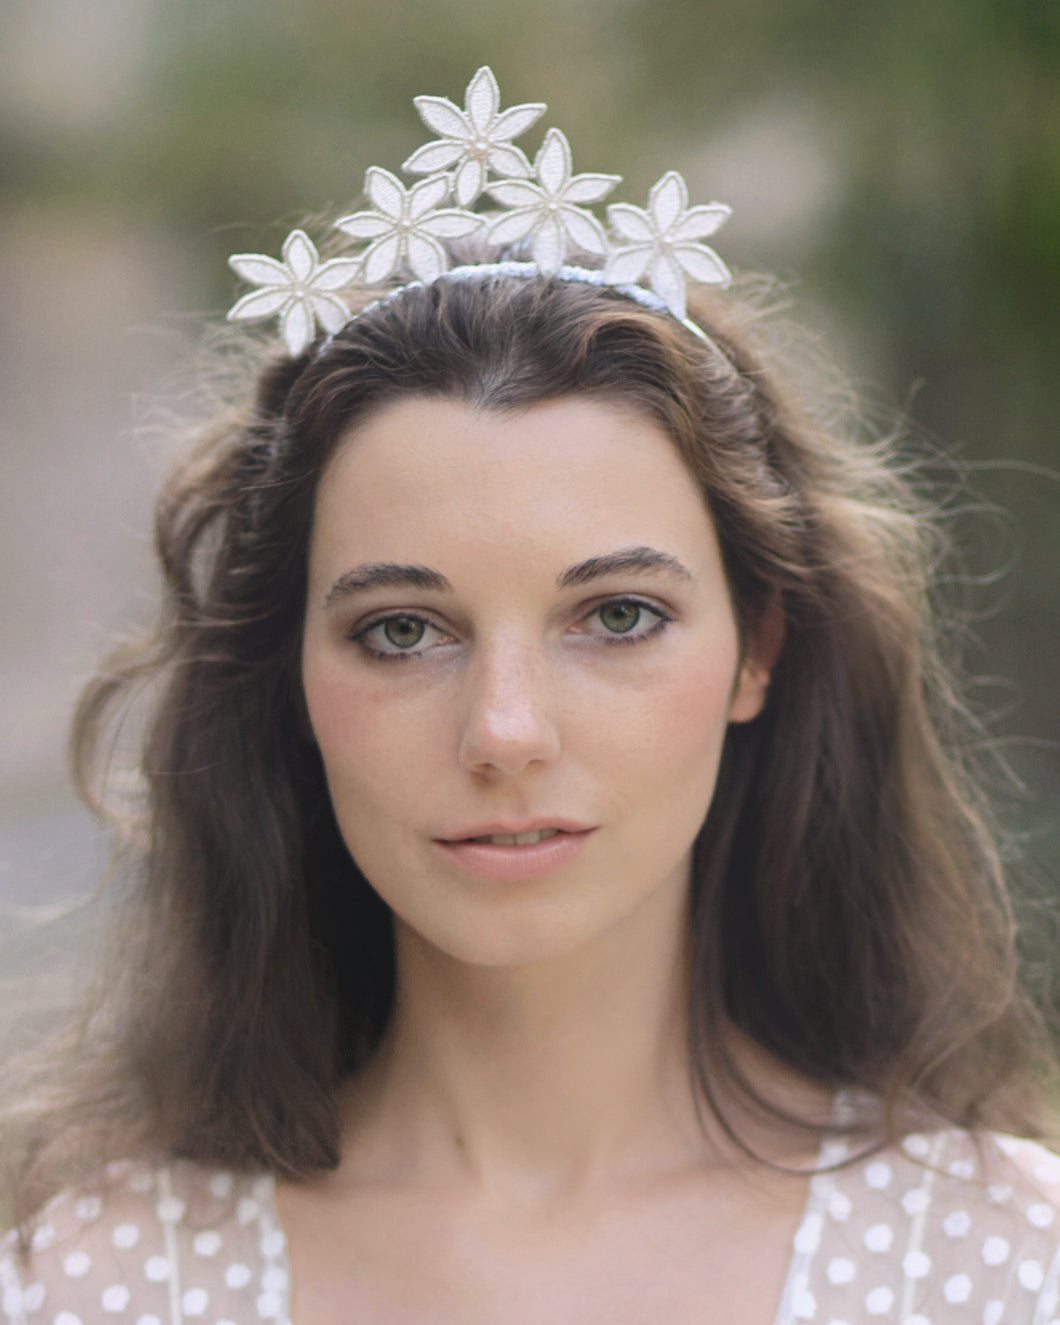 Romantic lace wedding crown with silver lace flowers and delicate Swarovski ivory pearls